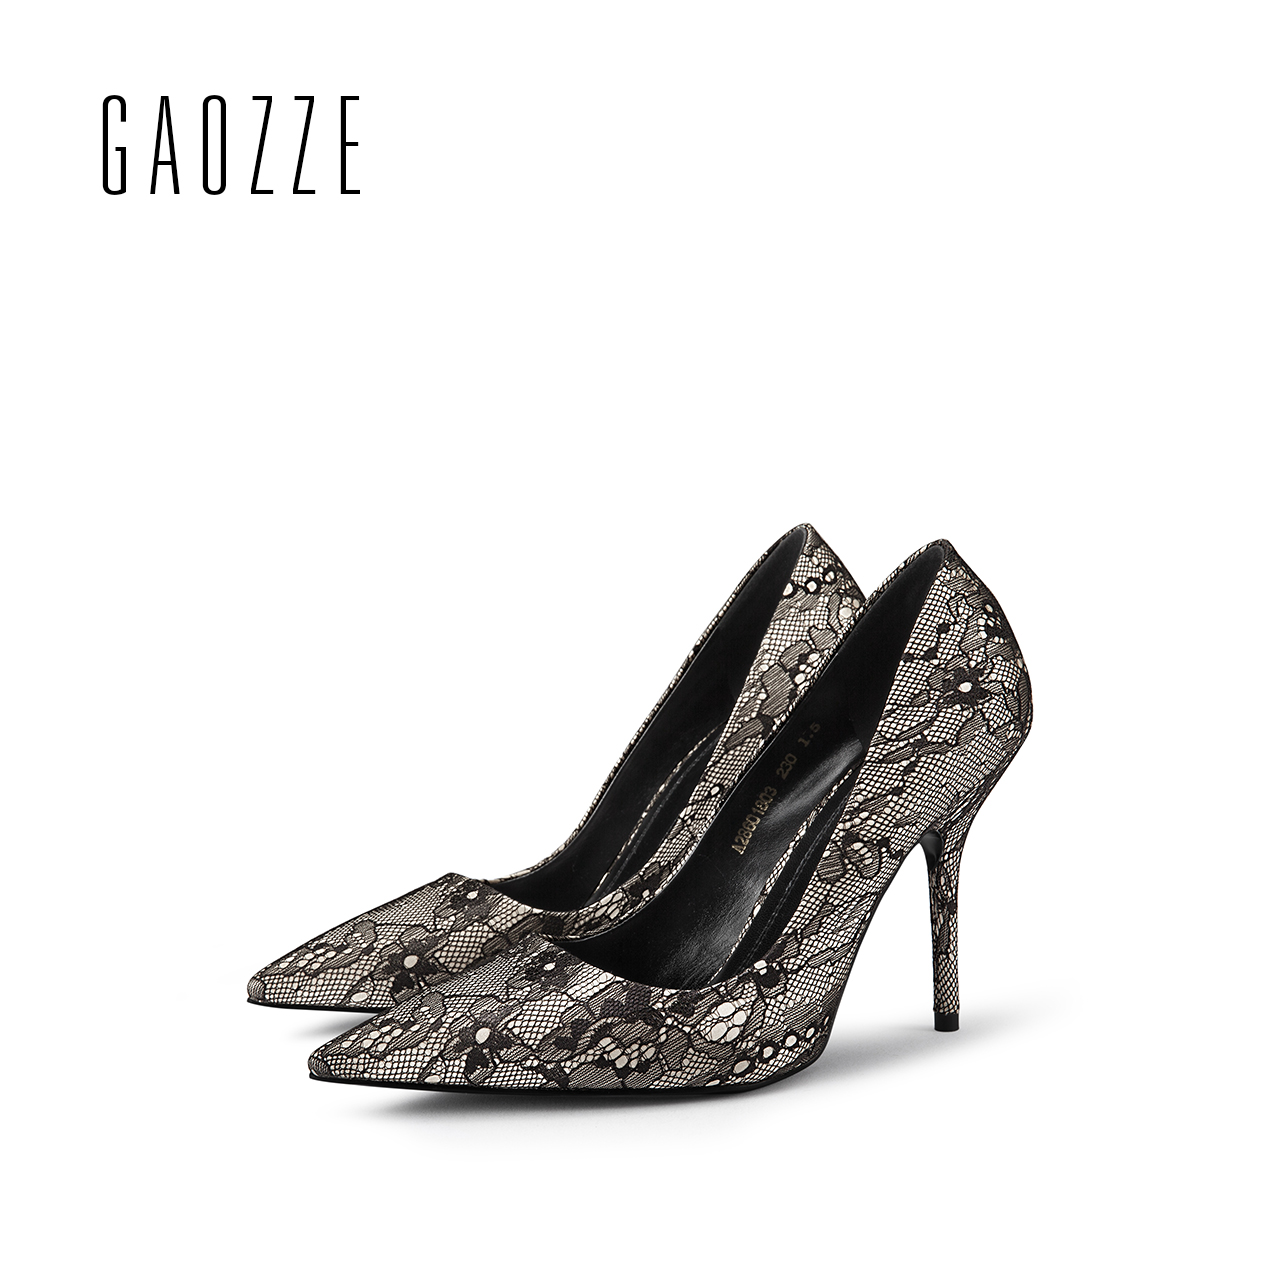 GAOZZE Black Elegant Lace Ladies Pumps Pointed Toe High Heel Shoes Party Women Pumps Shoes Designer zapatos mujer 2018 Spring famiaoo women pumps chaussure femme black gray zapatos mujer tacon high heel 2017 pointed toe thin heel ladies pumps women shoes